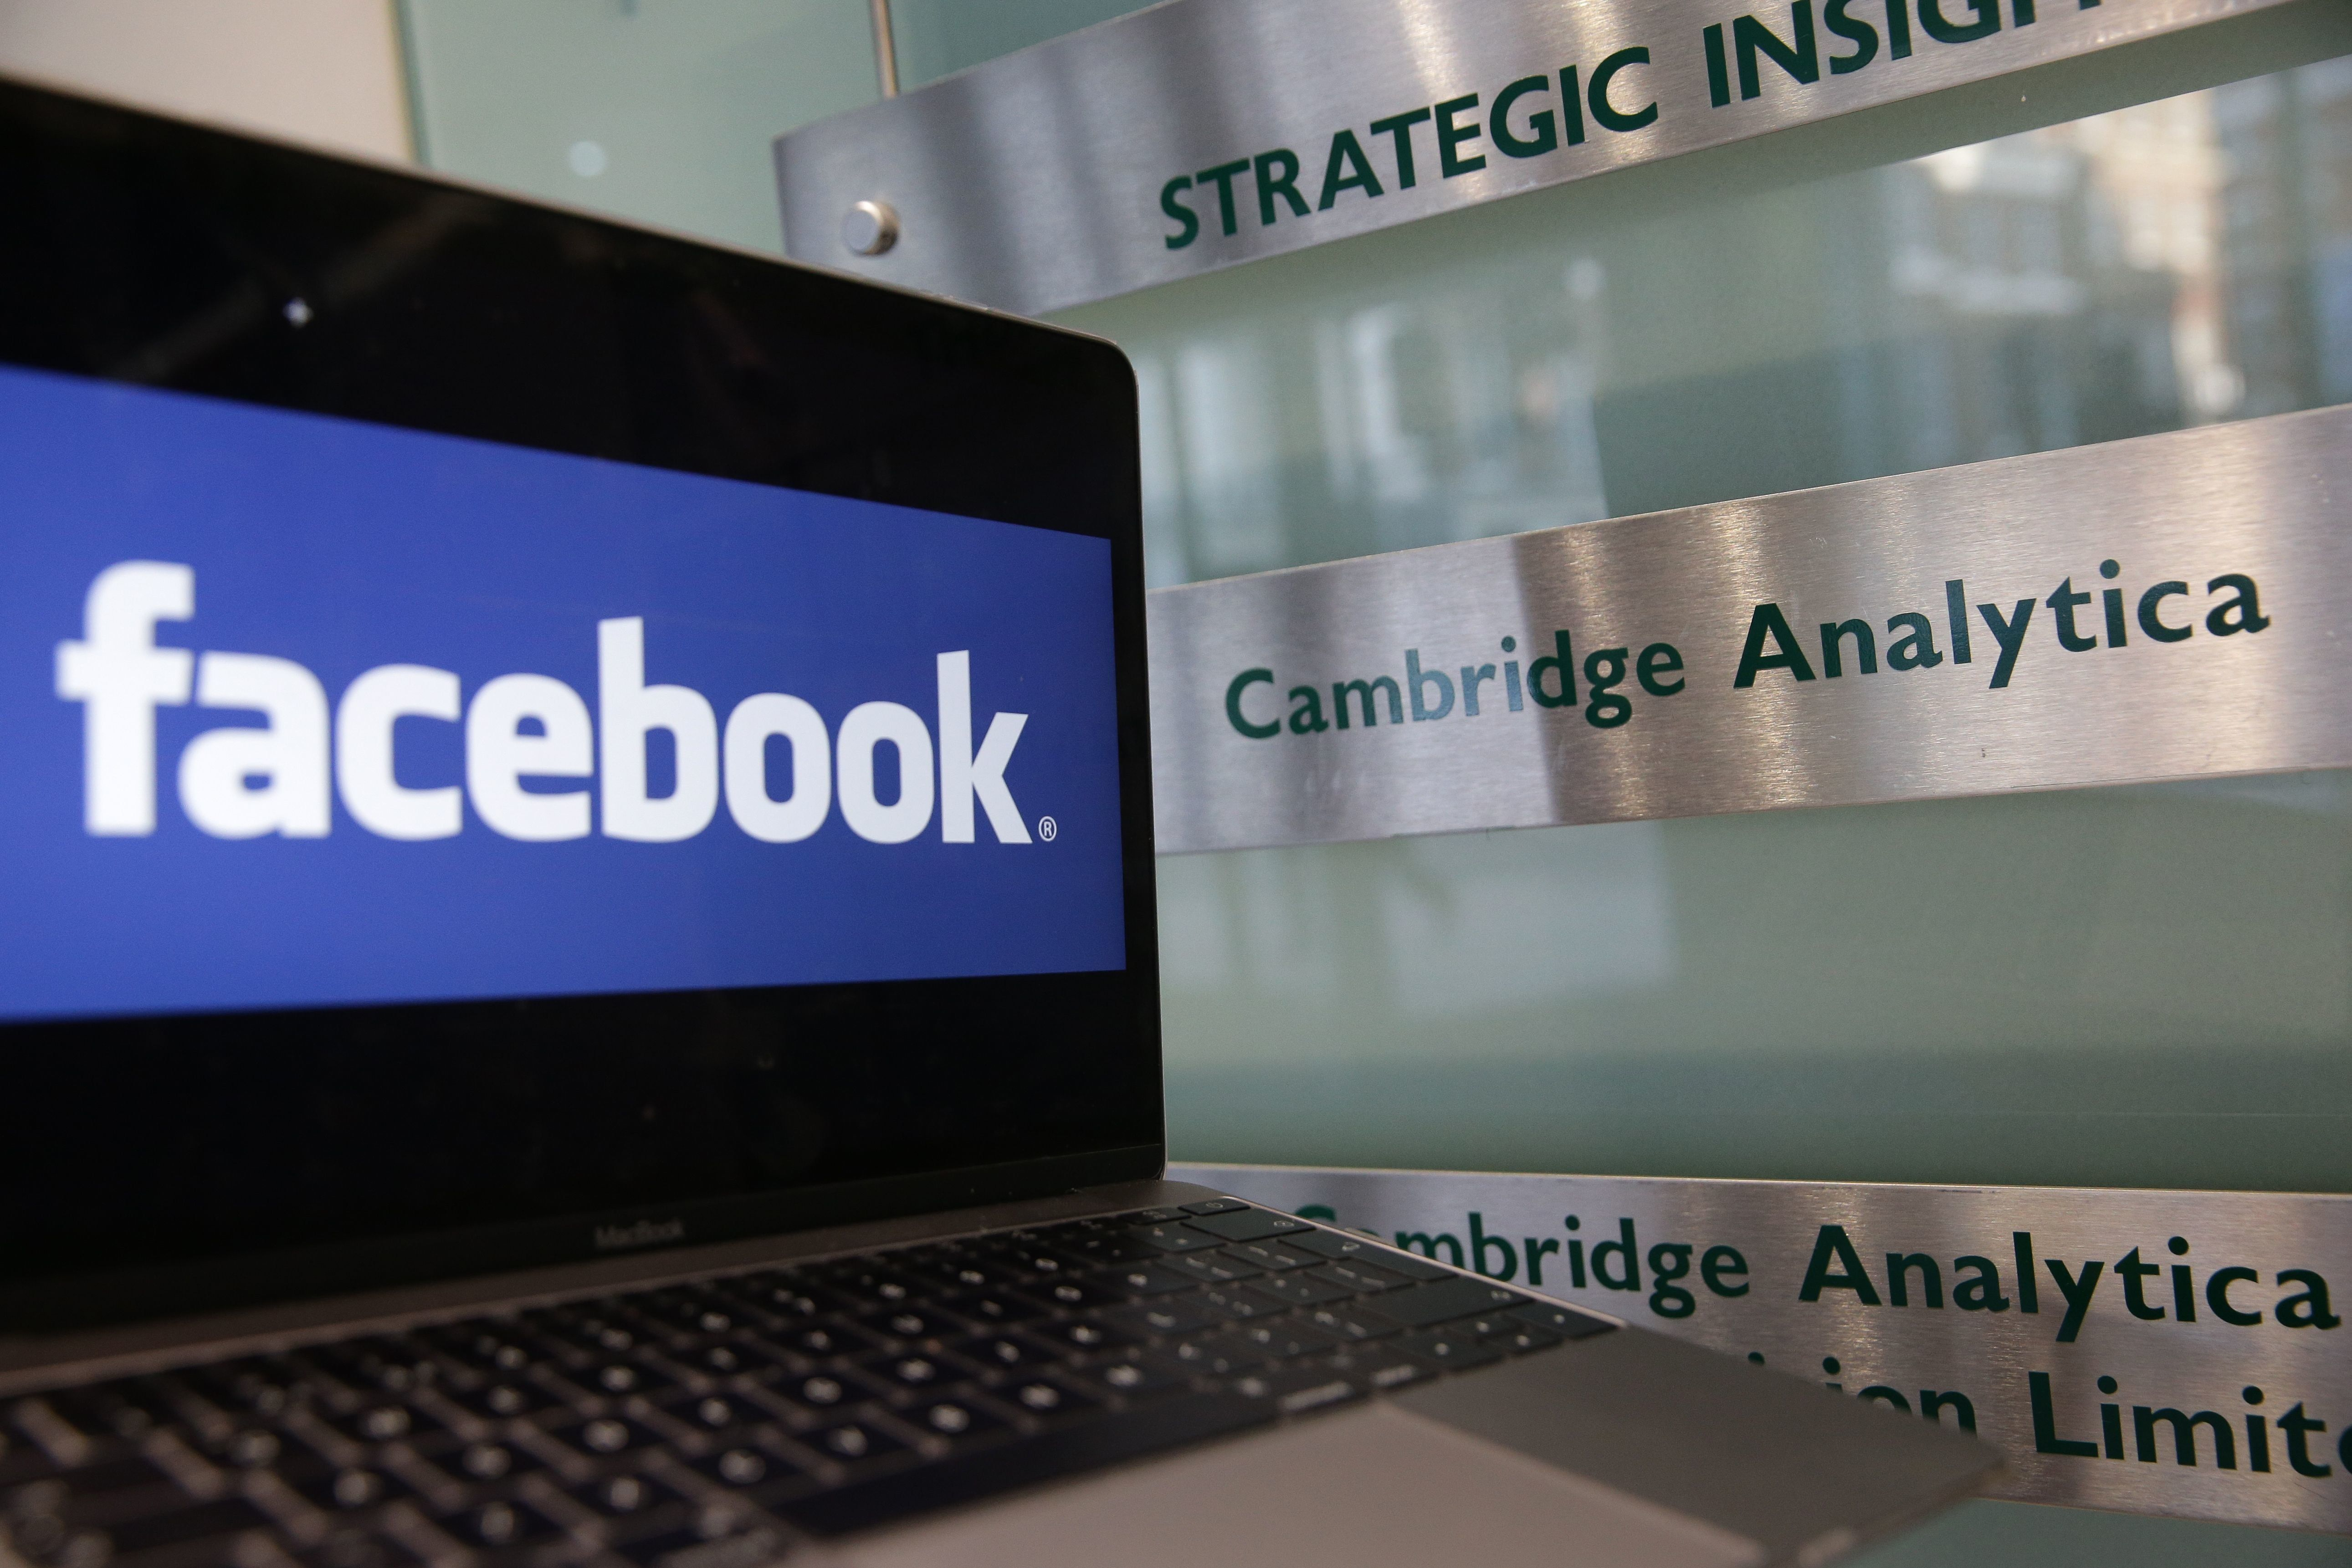 A laptop showing the Facebook logo is held alongside a Cambridge Analytica sign at the entrance to the building housing the offices of Cambridge Analytica, in central London on March 21, 2018.  Facebook expressed outrage over the misuse of its data as Cambridge Analytica, the British firm at the centre of a major scandal rocking the social media giant, suspended its chief executive.  / AFP PHOTO / Daniel LEAL-OLIVAS        (Photo credit should read DANIEL LEAL-OLIVAS/AFP/Getty Images)